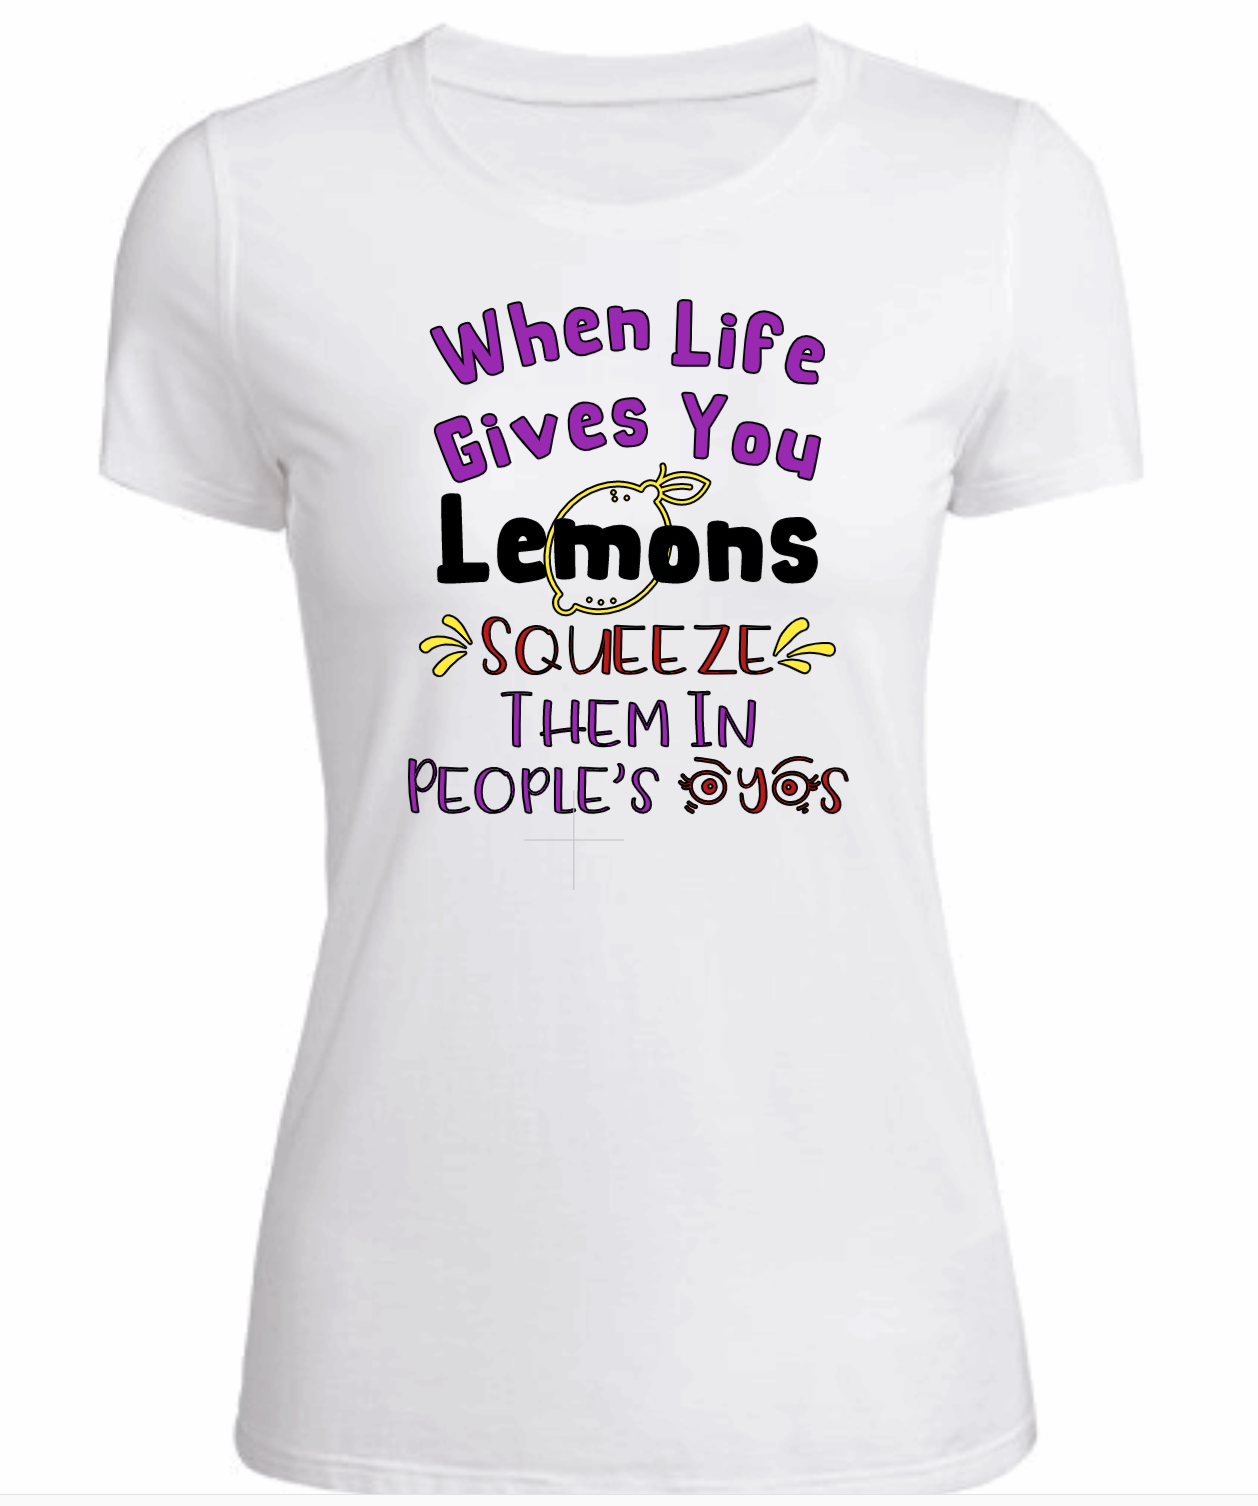 Life Gives You Lemons - Adult Unisex T-Shirt